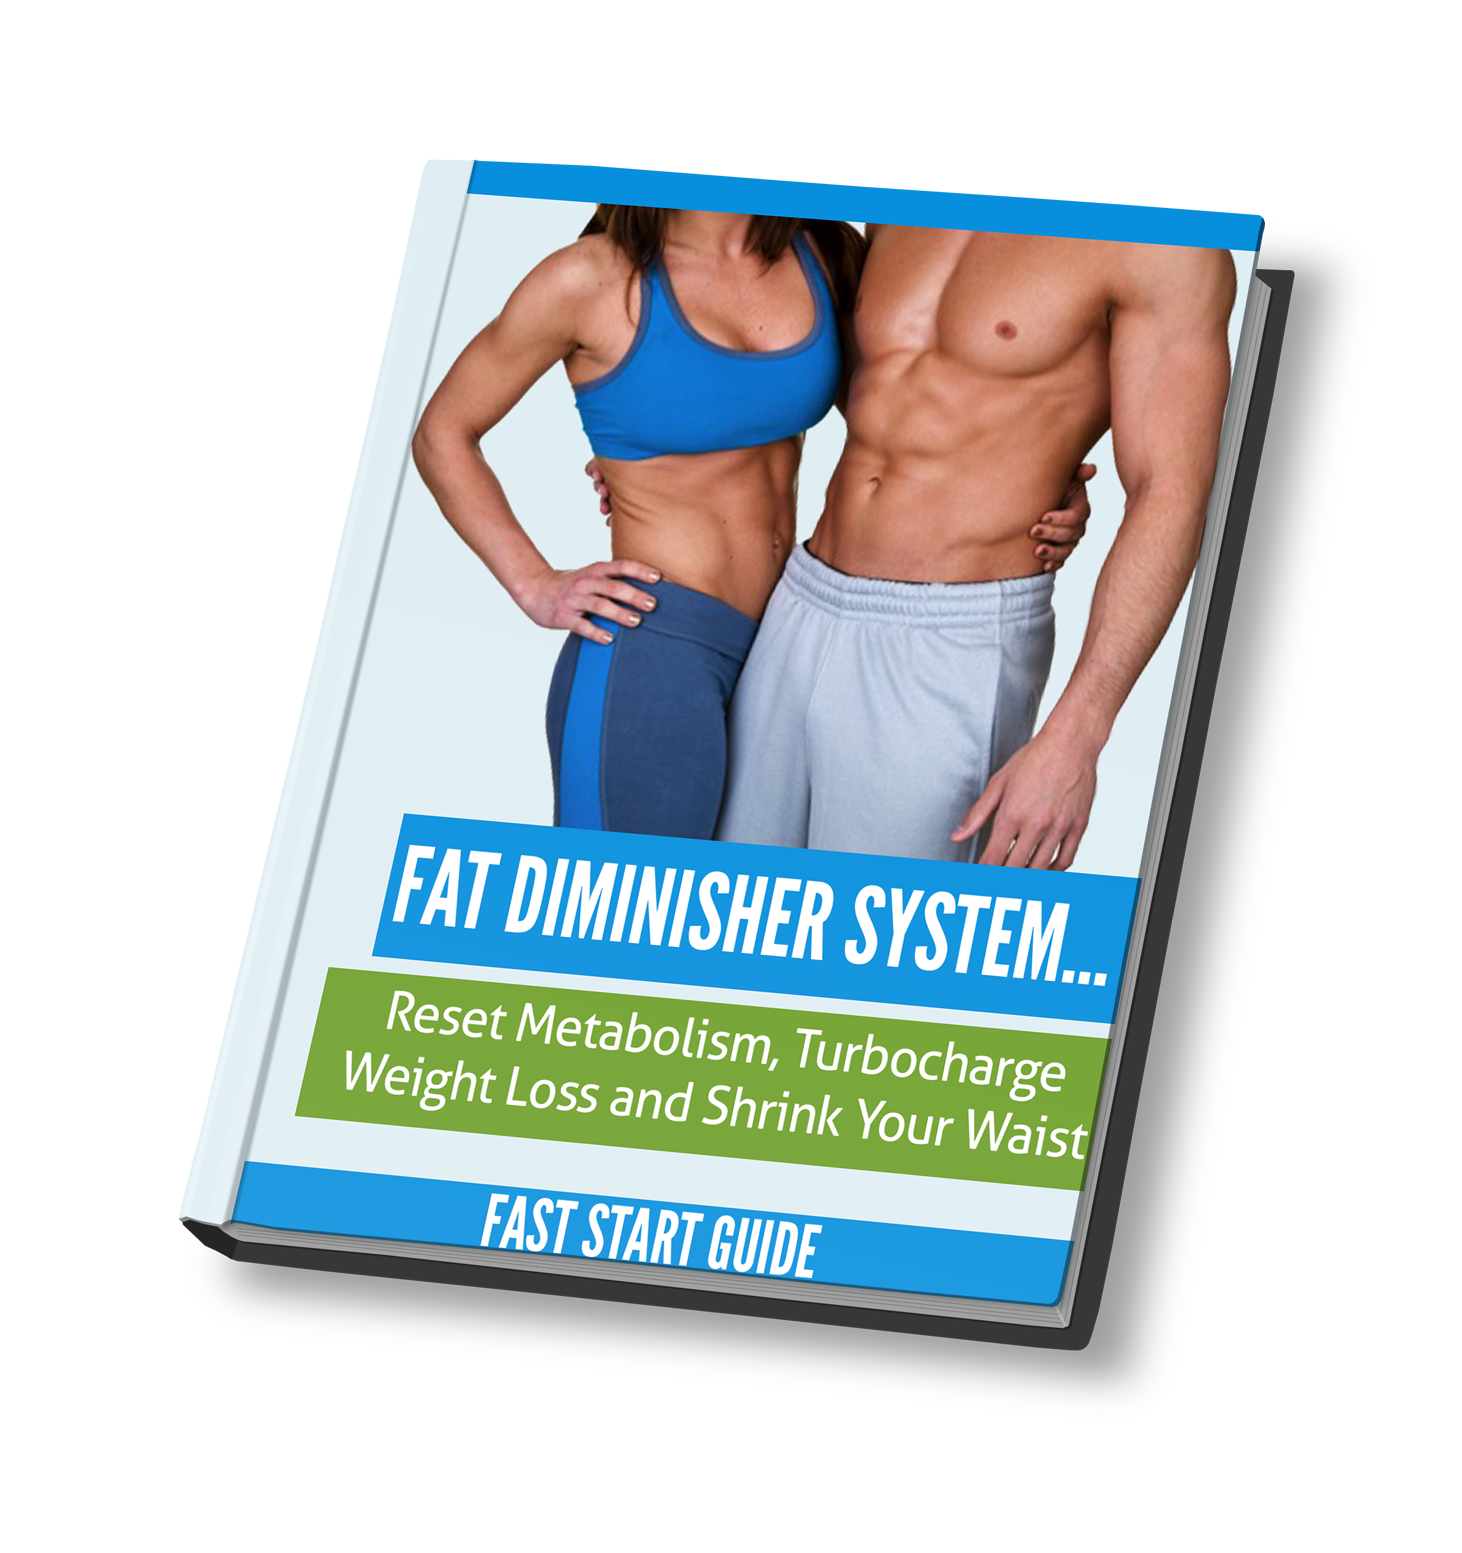 Loose 38 lbs In 4 Weeks - Fat Diminisher System